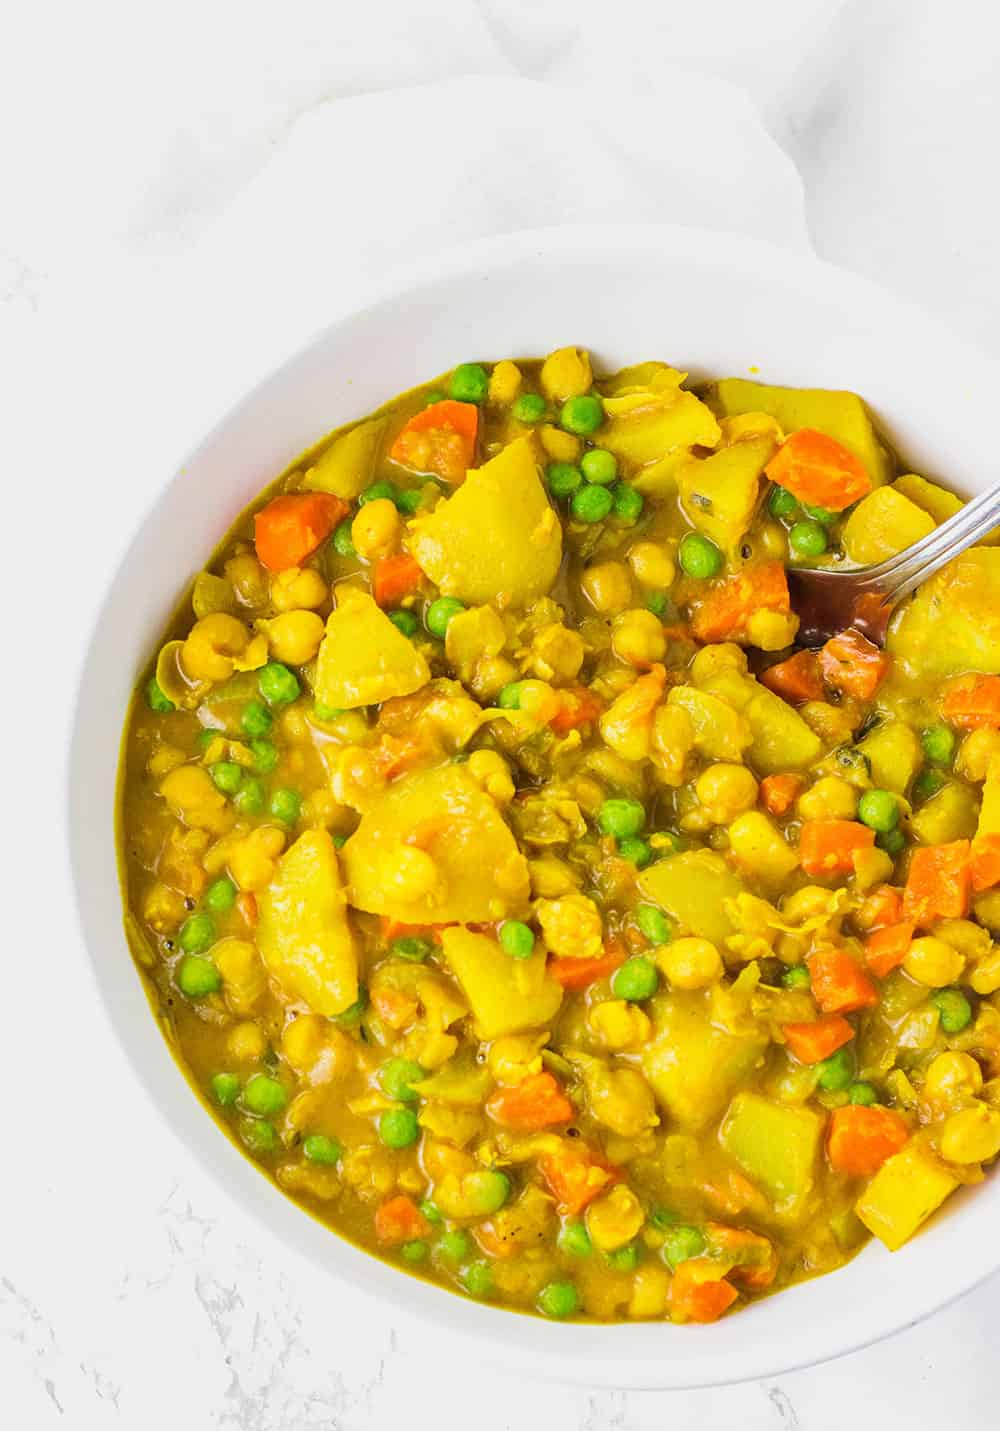 jamaican spicy potato curry in a white bowl on a white background